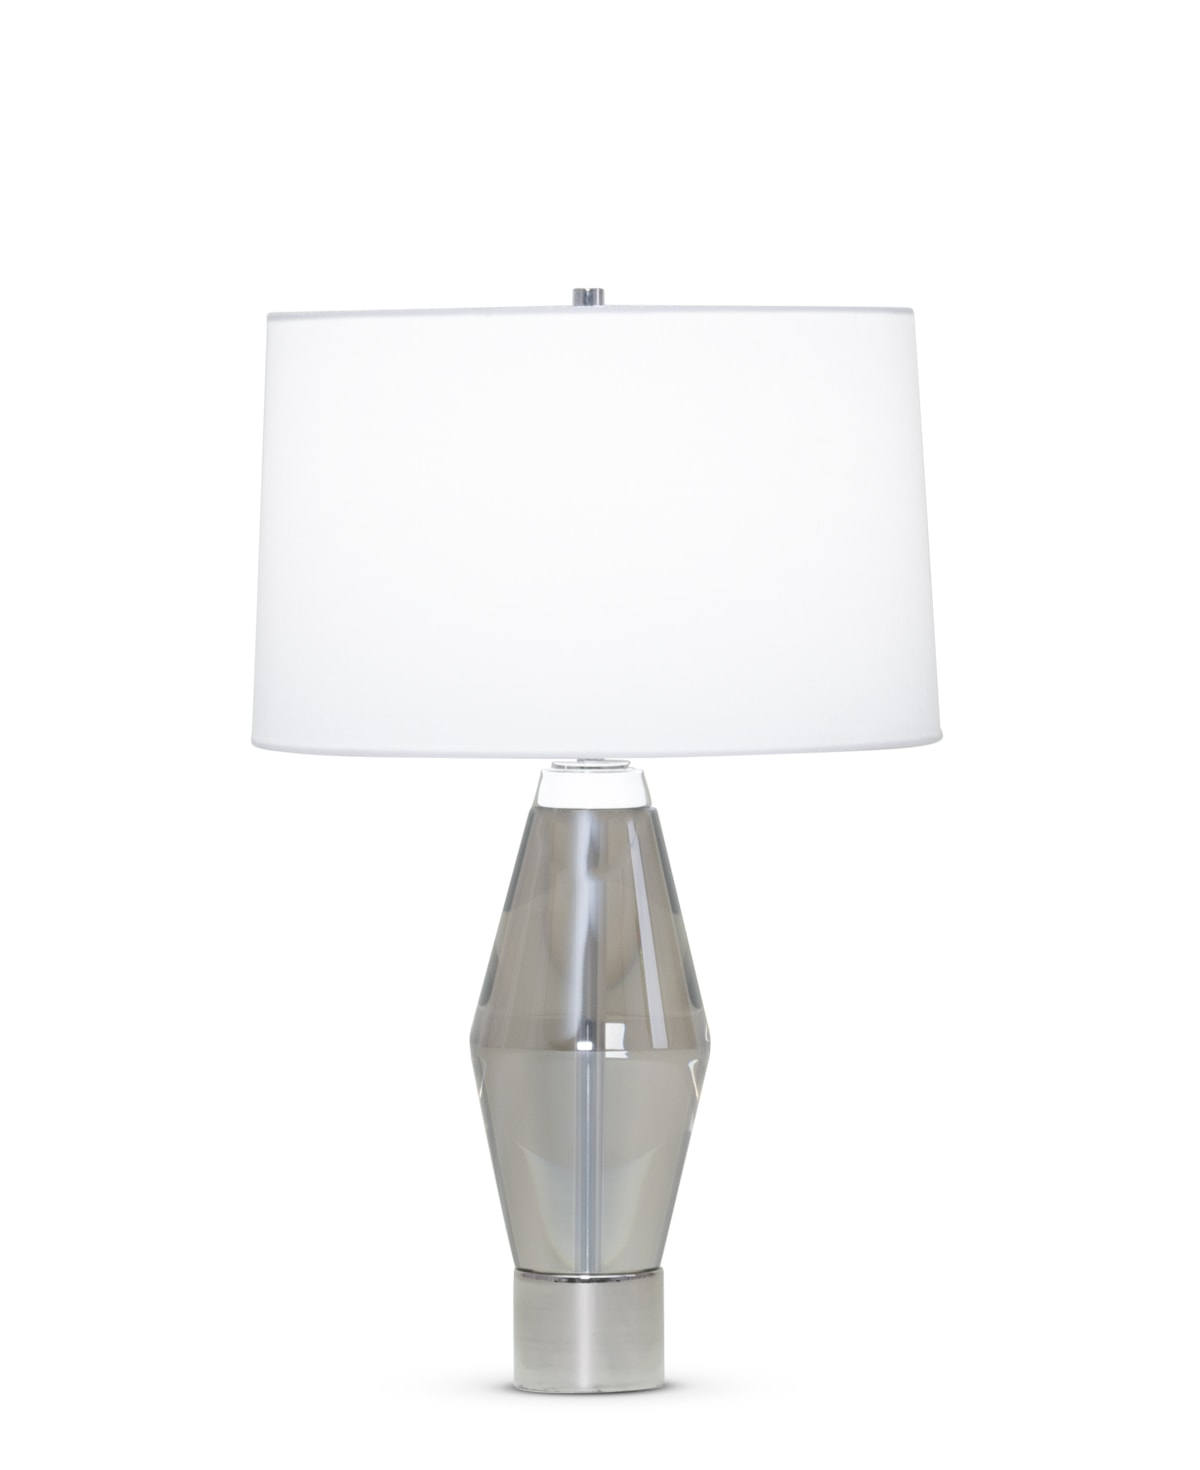 FlowDecor Jacob Table Lamp in crystal with smoked and metal with polished nickel finish and white linen tapered drum shade (# 3910)